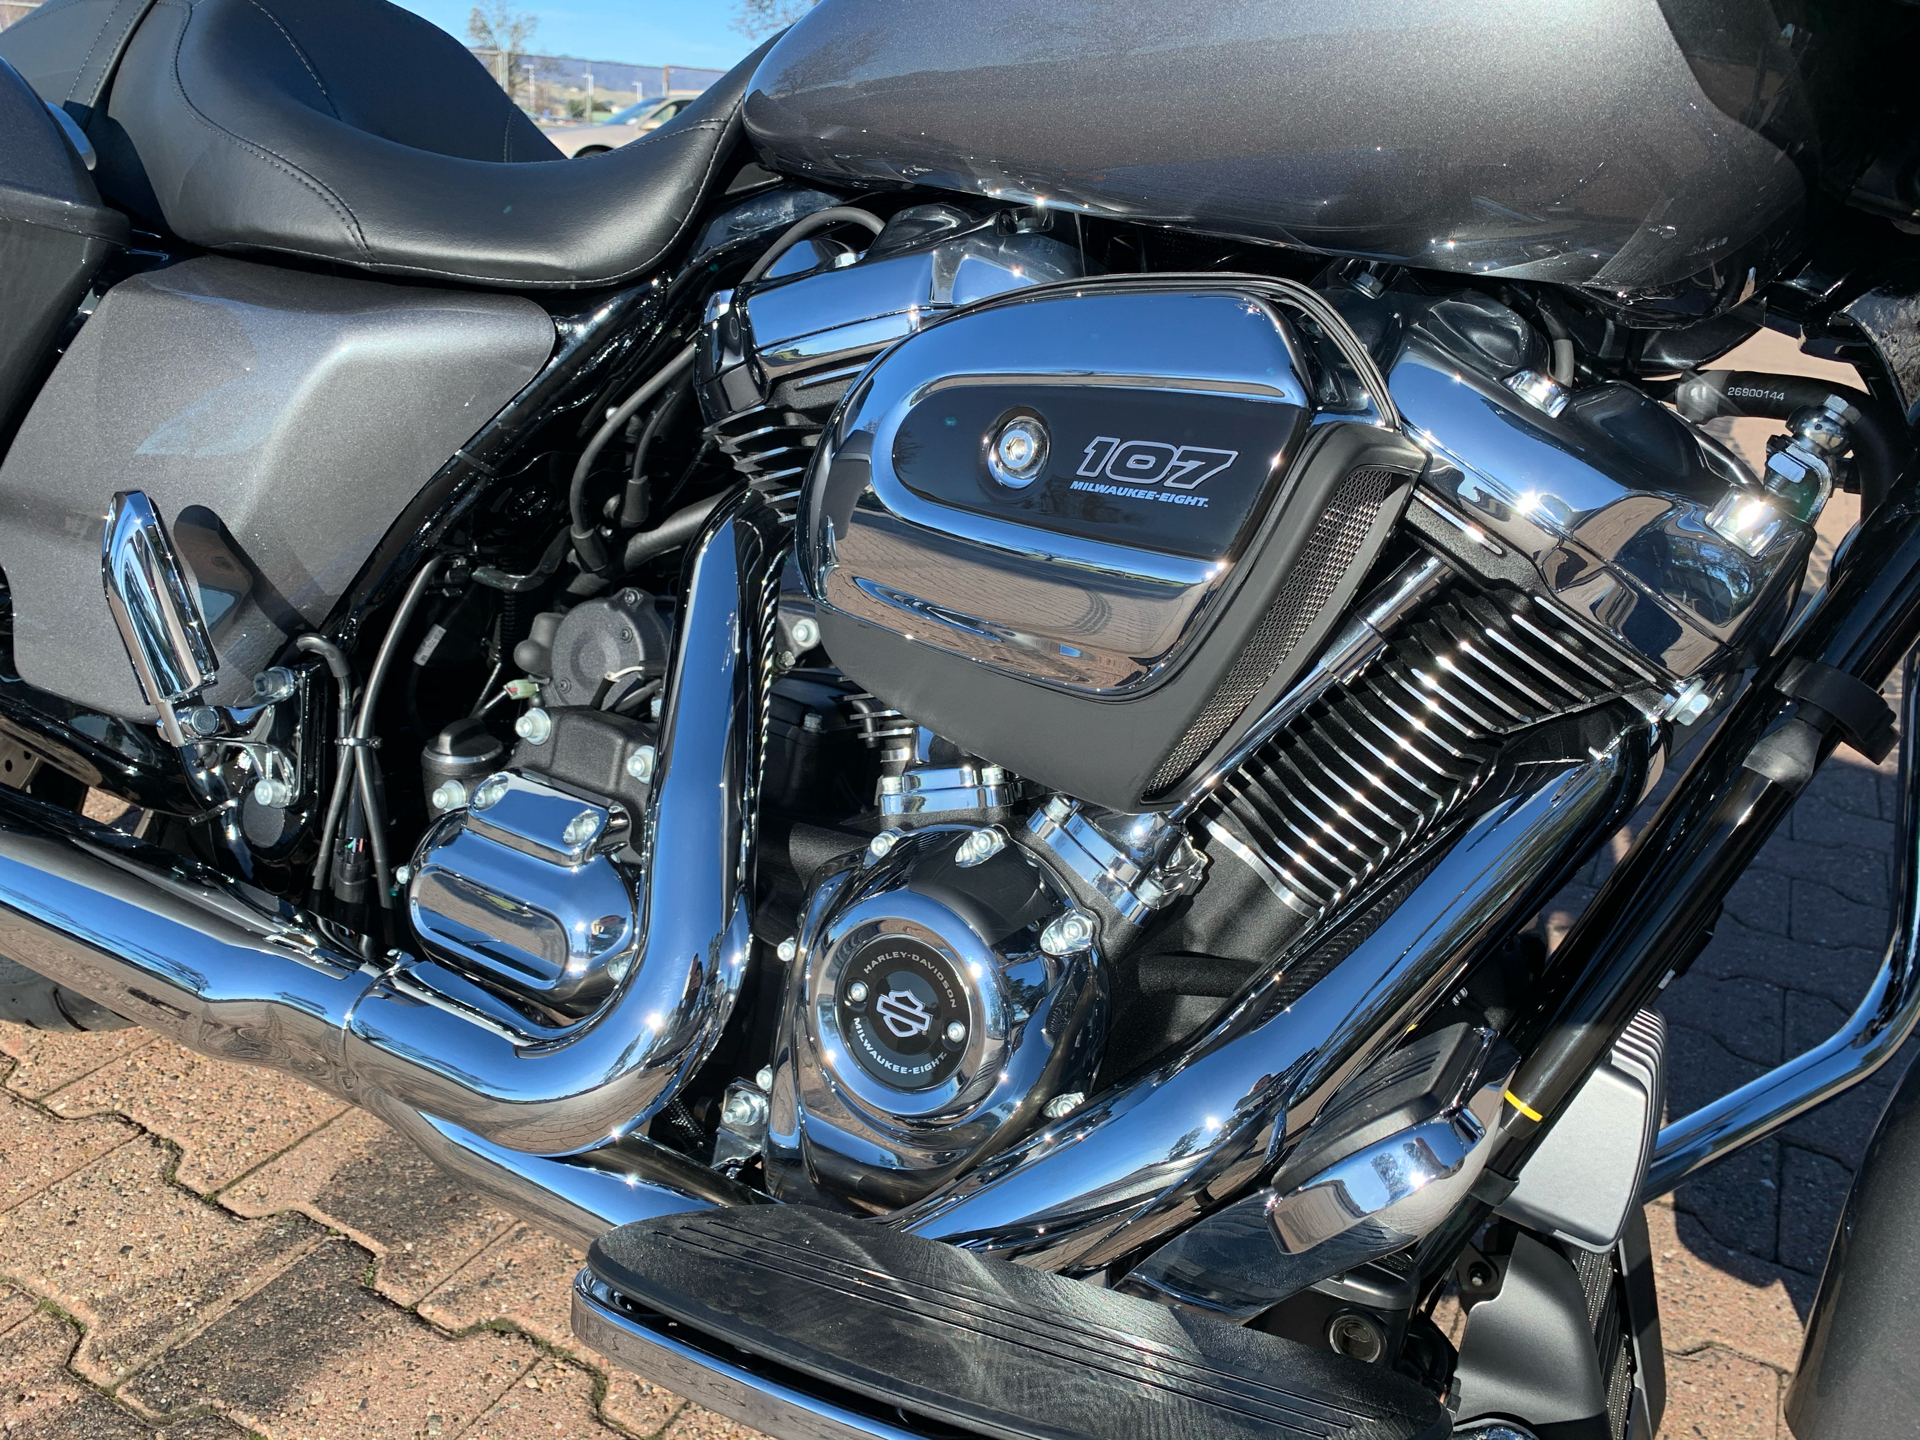 2021 Harley-Davidson Road Glide in Vacaville, California - Photo 8